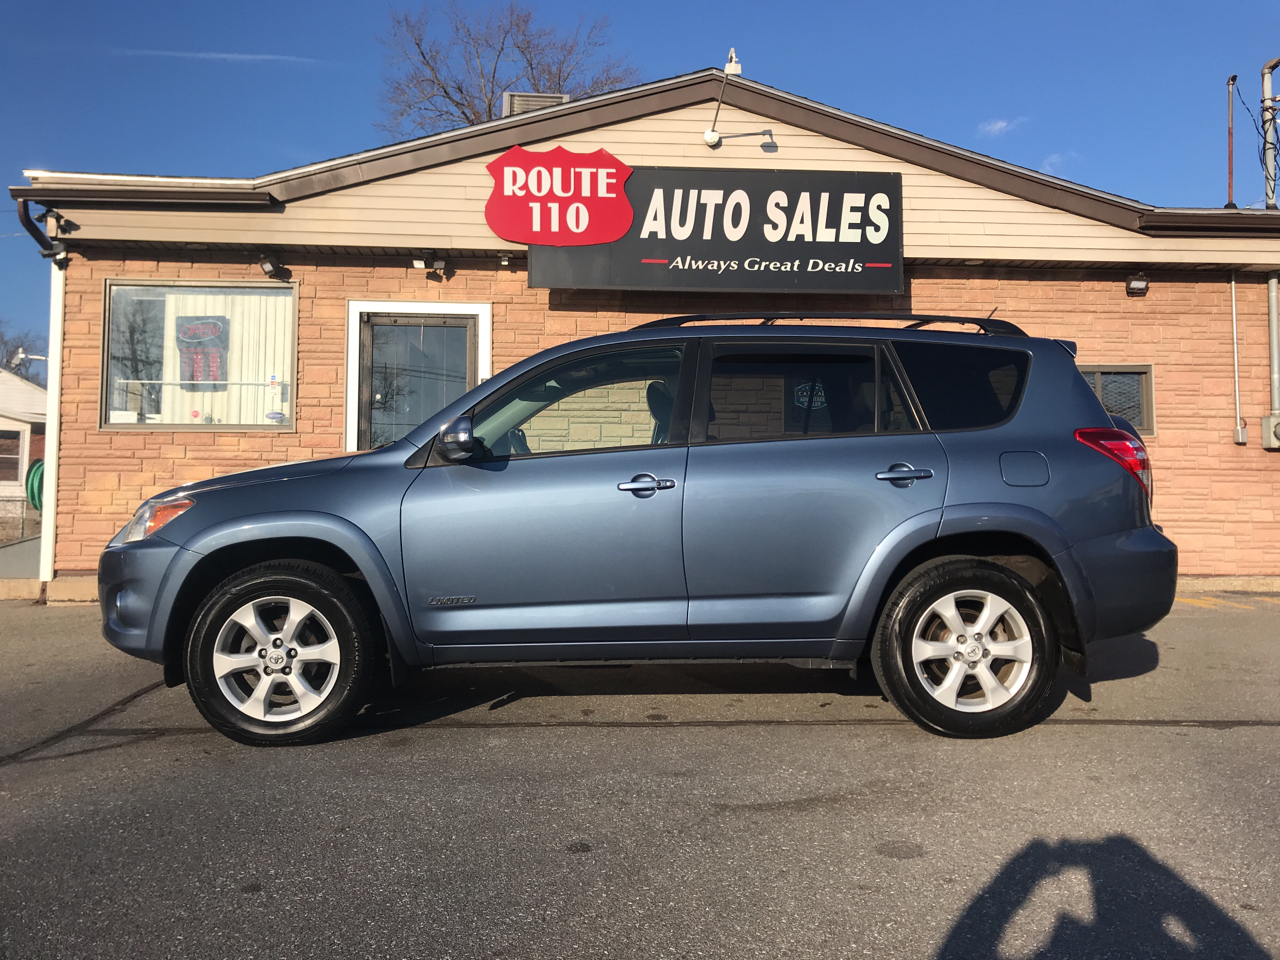 2011 Toyota RAV4 4dr Limited 4-cyl 4WD (Natl)